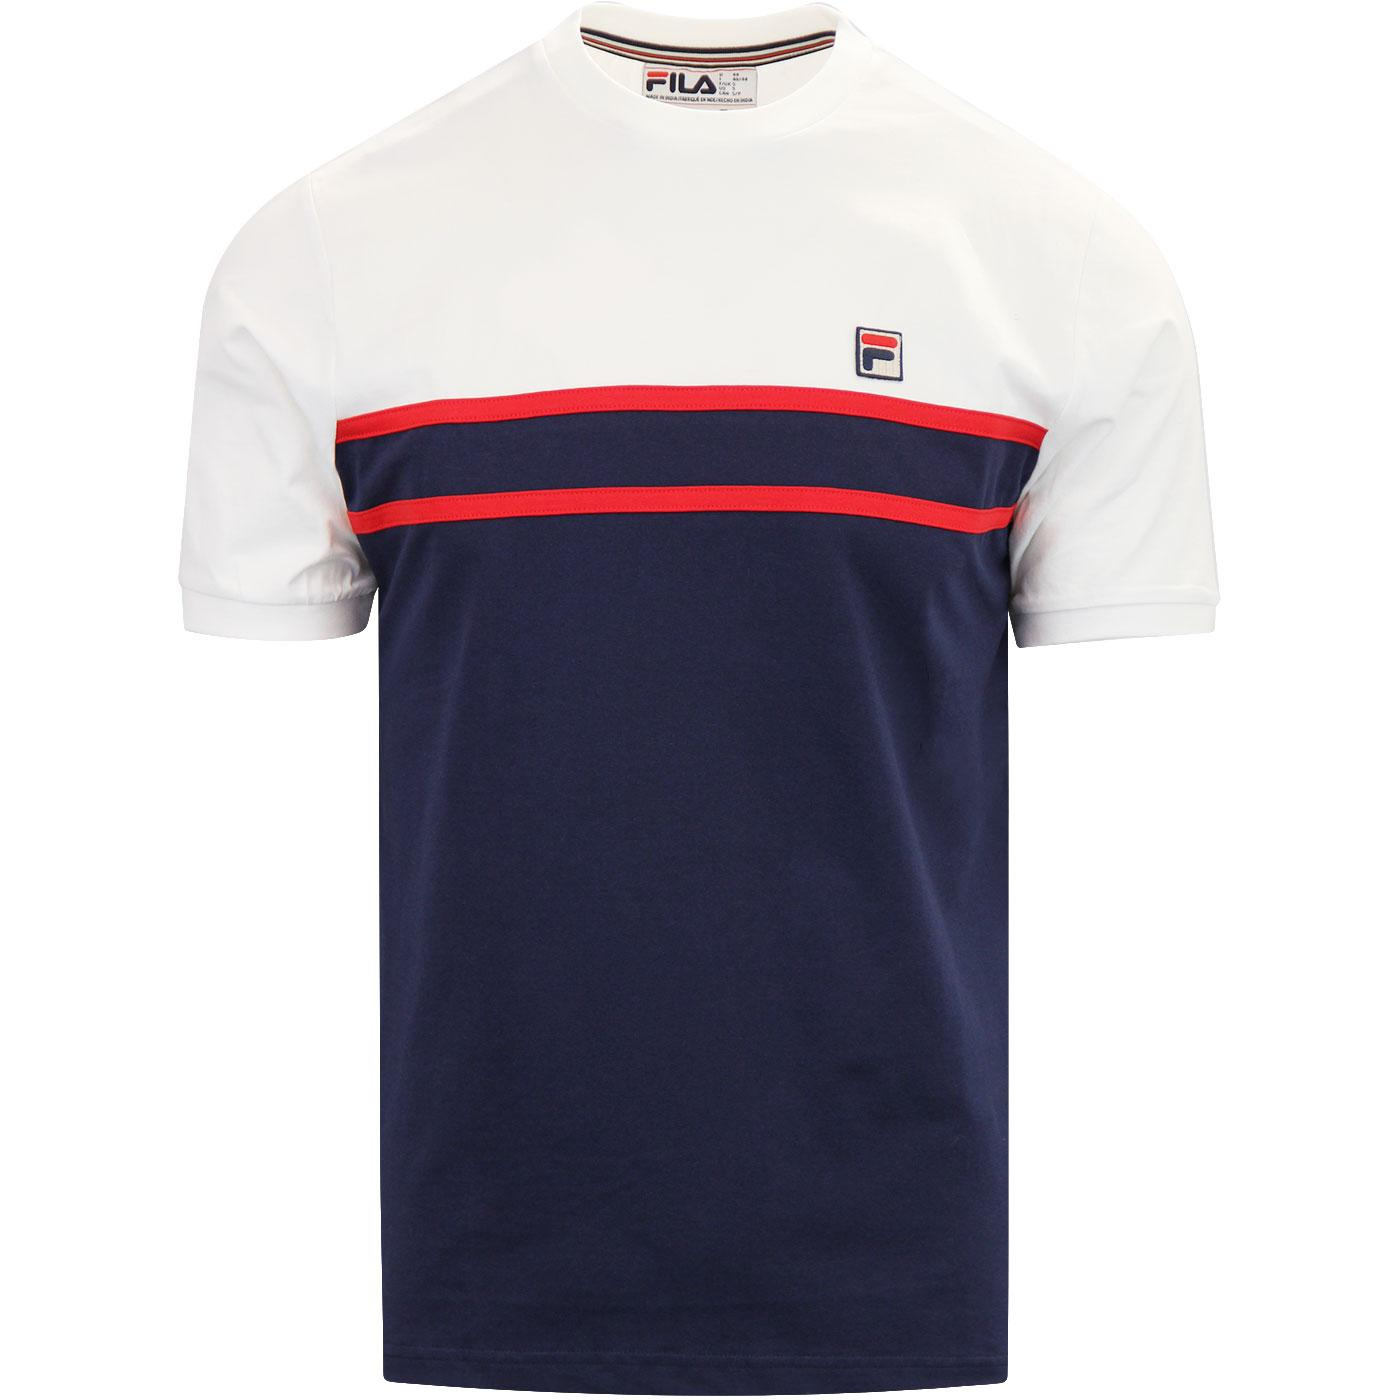 Baldi FILA VINTAGE Retro 80s Colour Panel Tee (P)